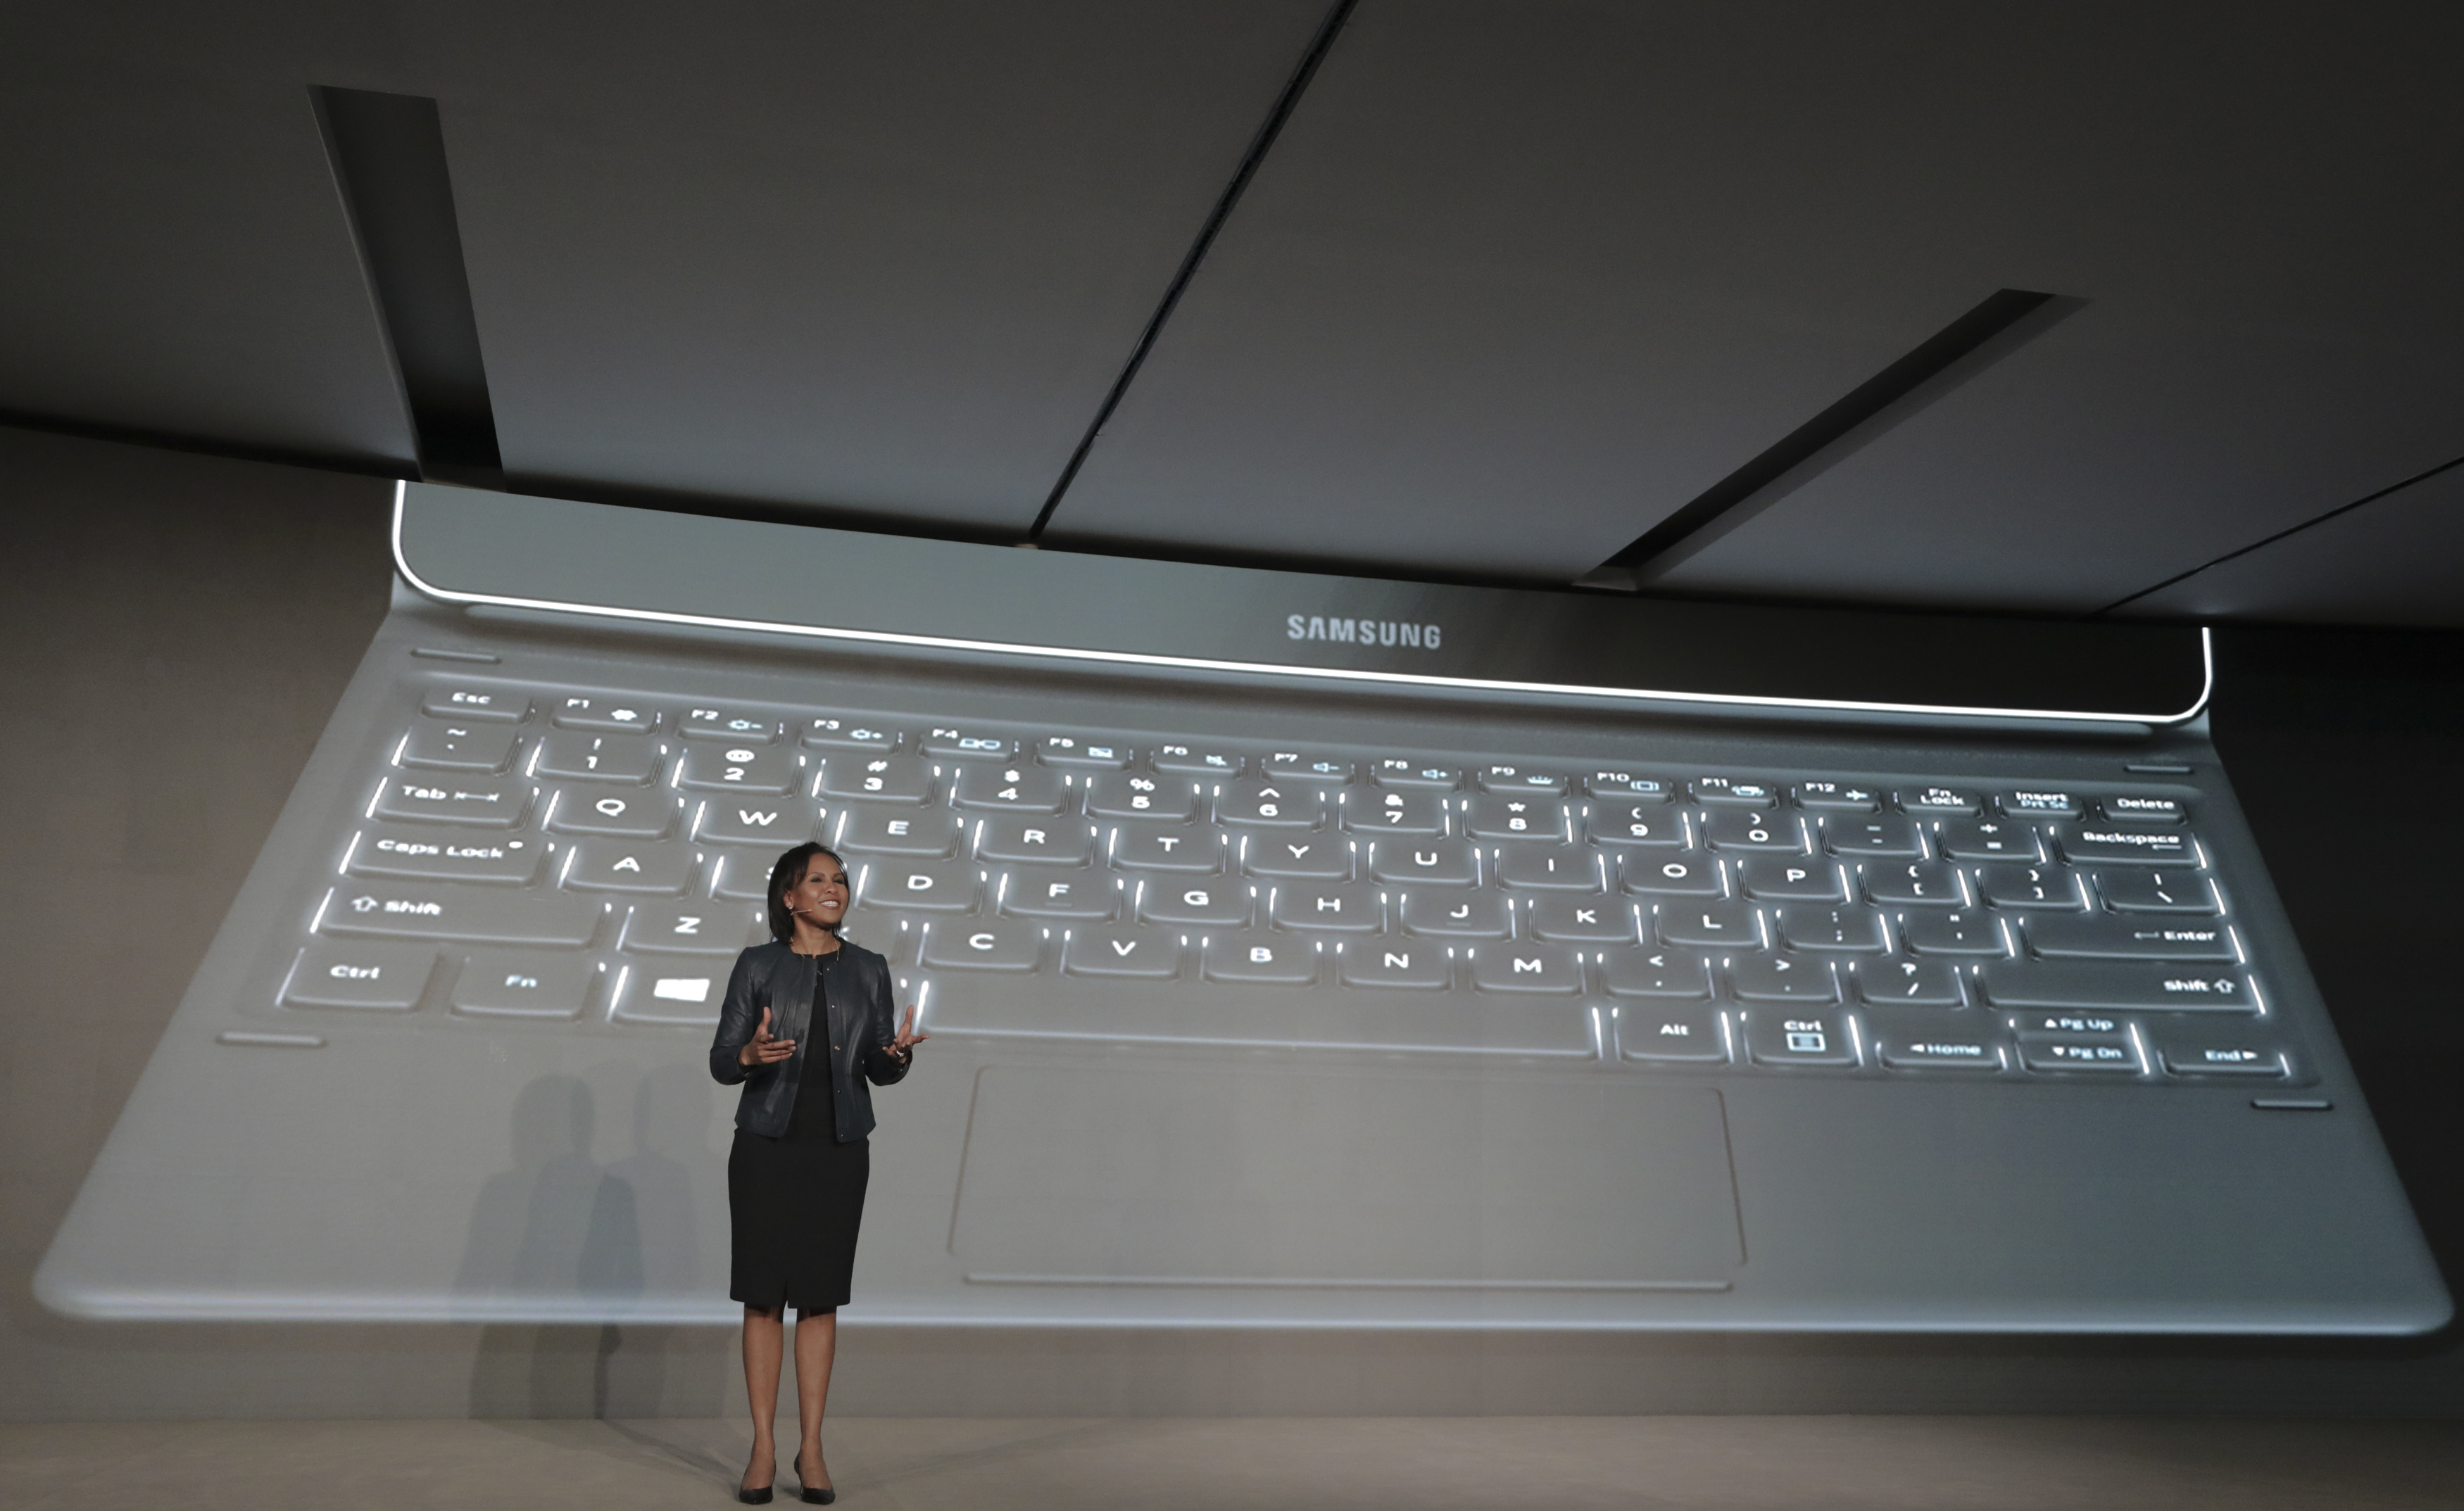 Cotton, Vice President of Samsung America, speaks during an event at Mobile World Congress in Barcelona